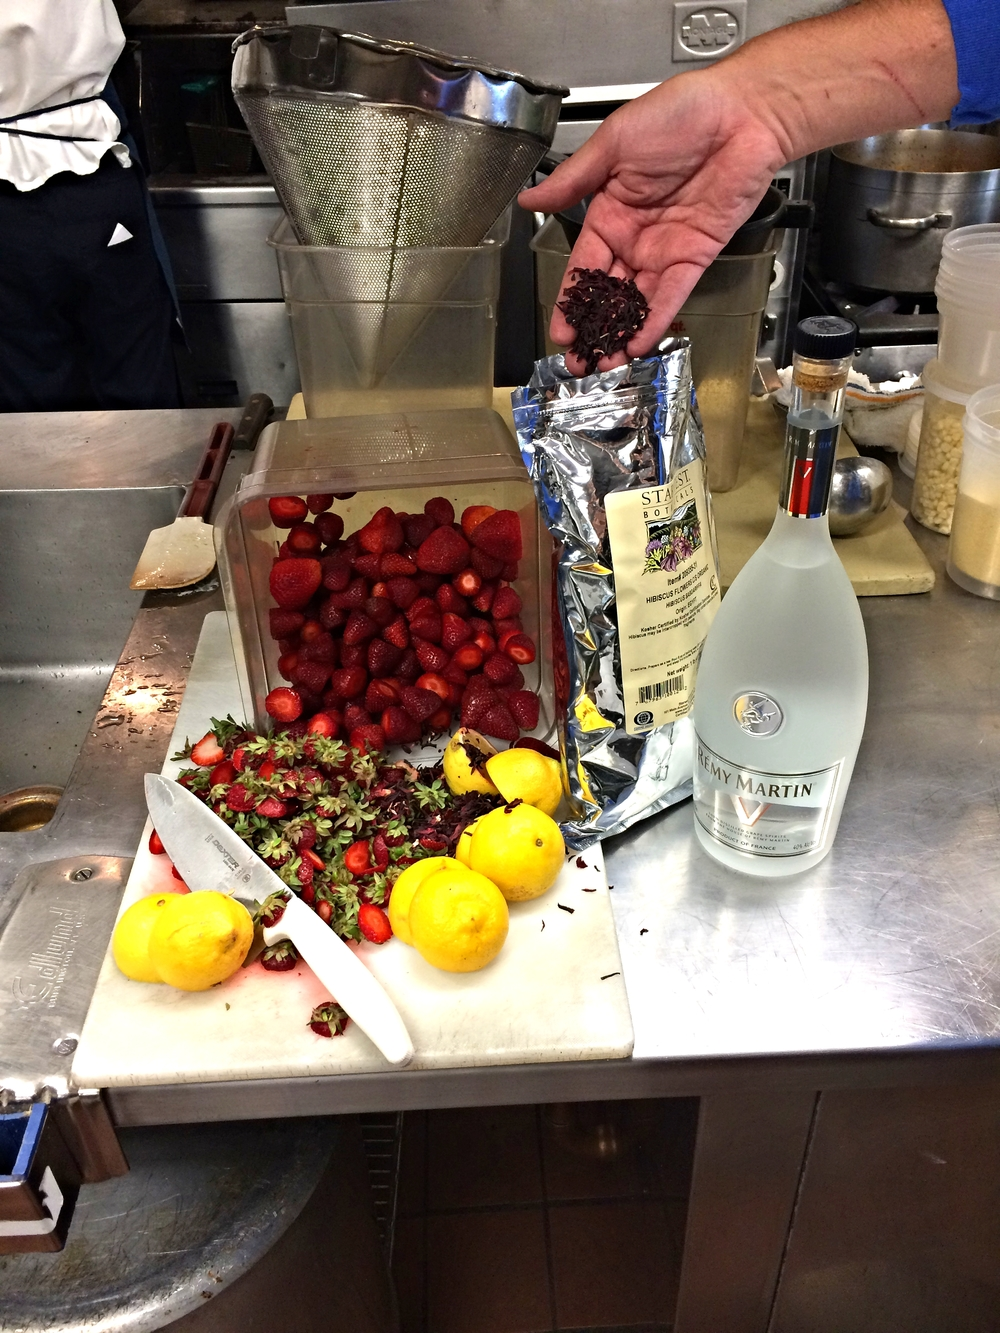 Ingredients for Joe's Strawberry & Hibiscus tincture: strawberries, lemon, Rémy Martin V and dried hibiscus.